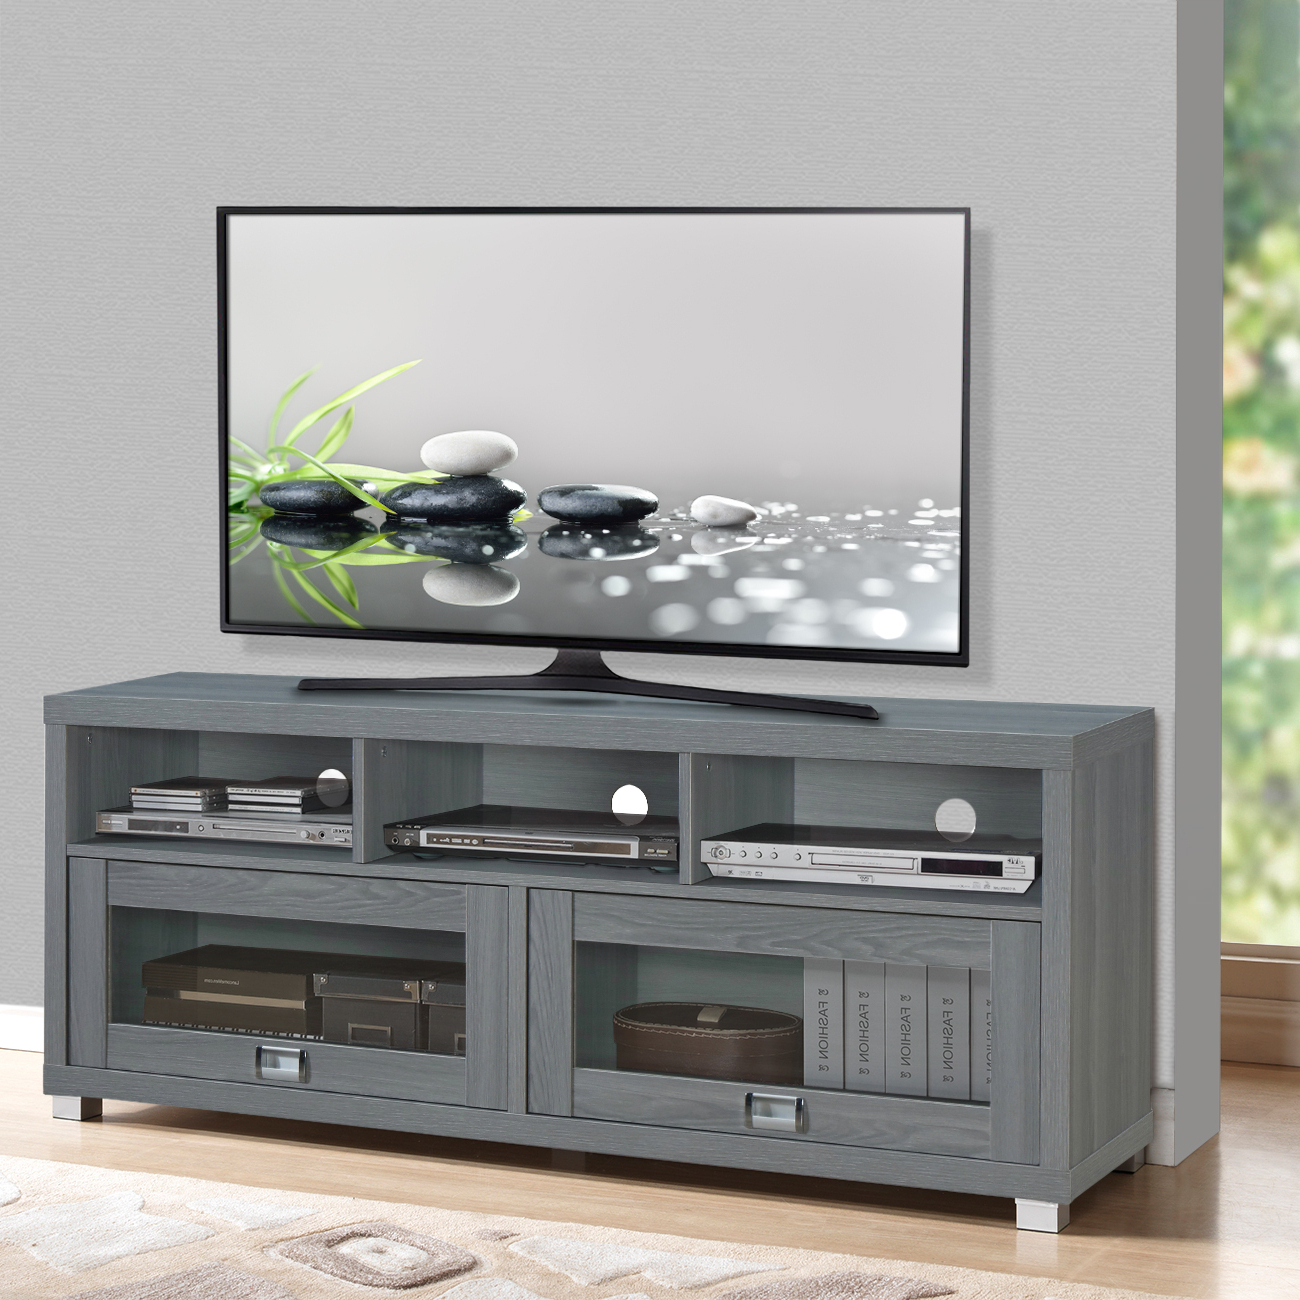 """Spellman Tv Stands For Tvs Up To 55"""" Within Fashionable Flat Screen Tv Stand Up To 75 Inch 50 55 60 65 70 55in (View 13 of 25)"""